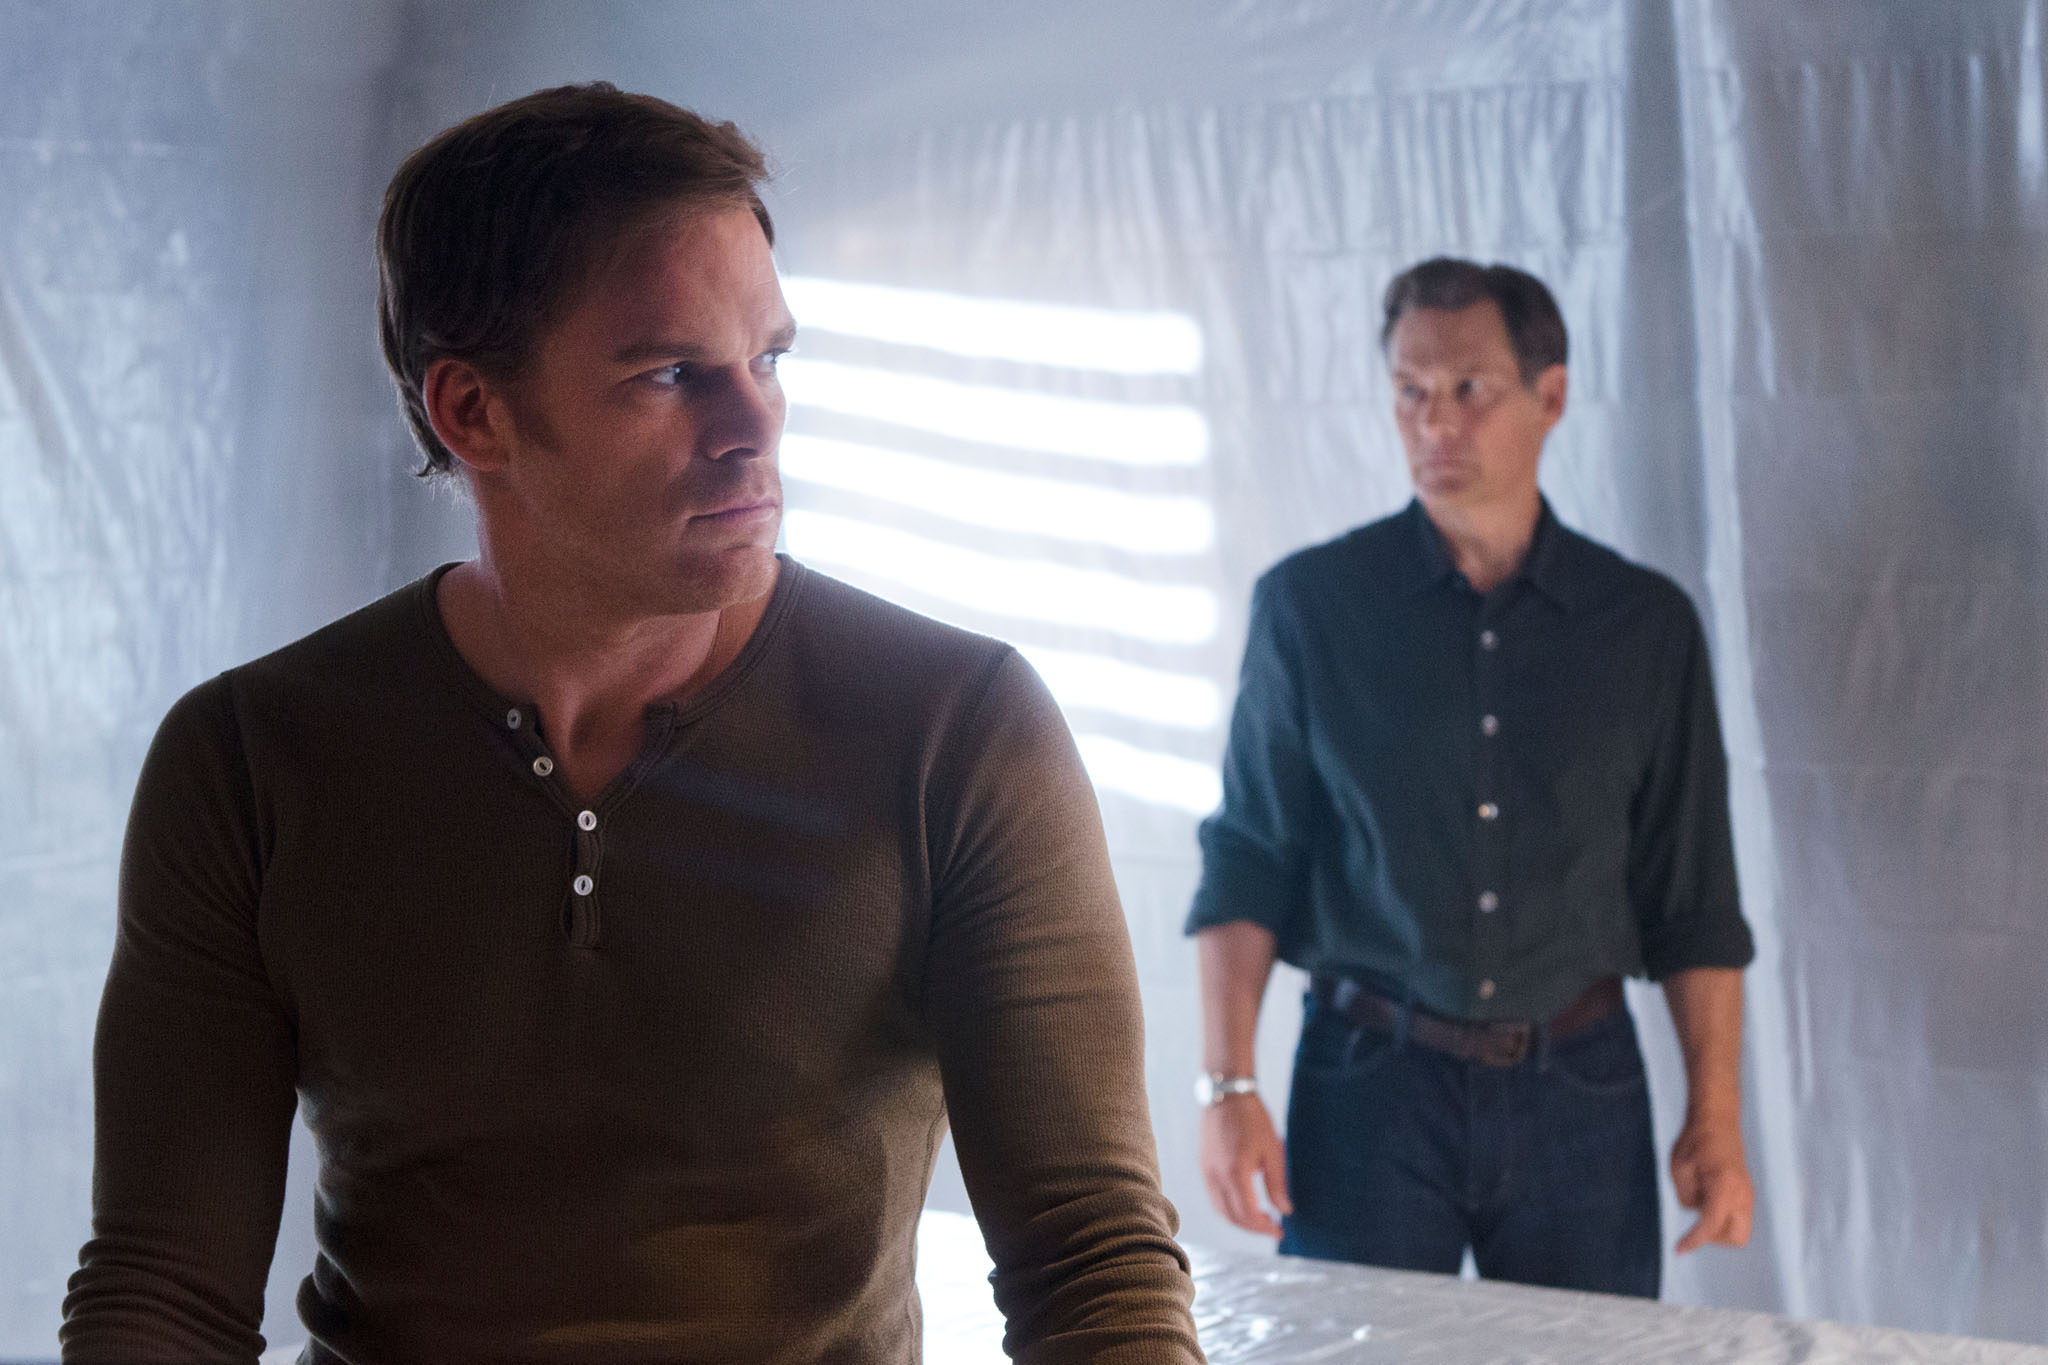 Michael C. Hall as Dexter Morgan and James Remar as Harry Morgan in the 'Dexter' Season 8 episode, 'Goodbye Miami.'